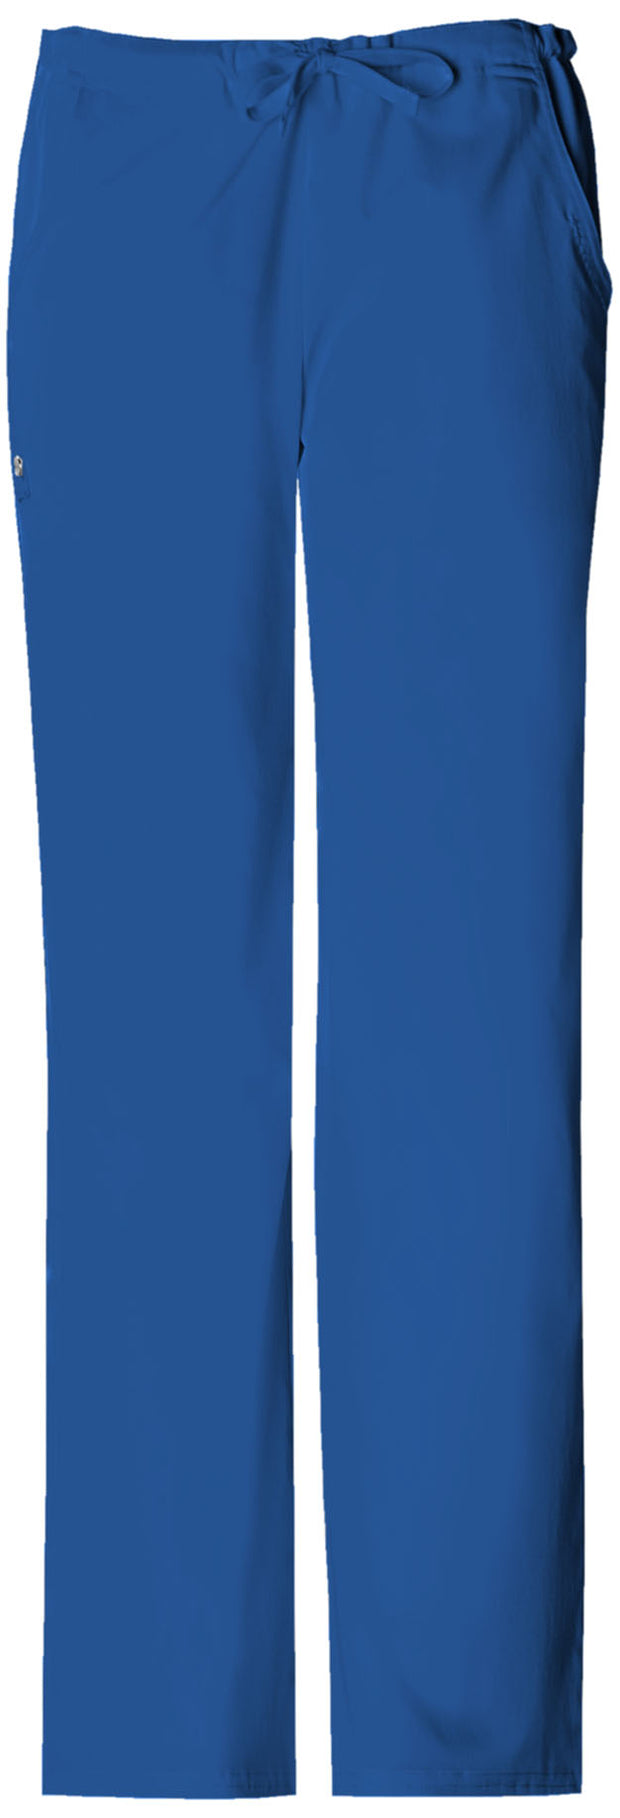 Cherokee Luxe Women's Low Rise Straight Leg Drawstring Pant - 1066P  Petite